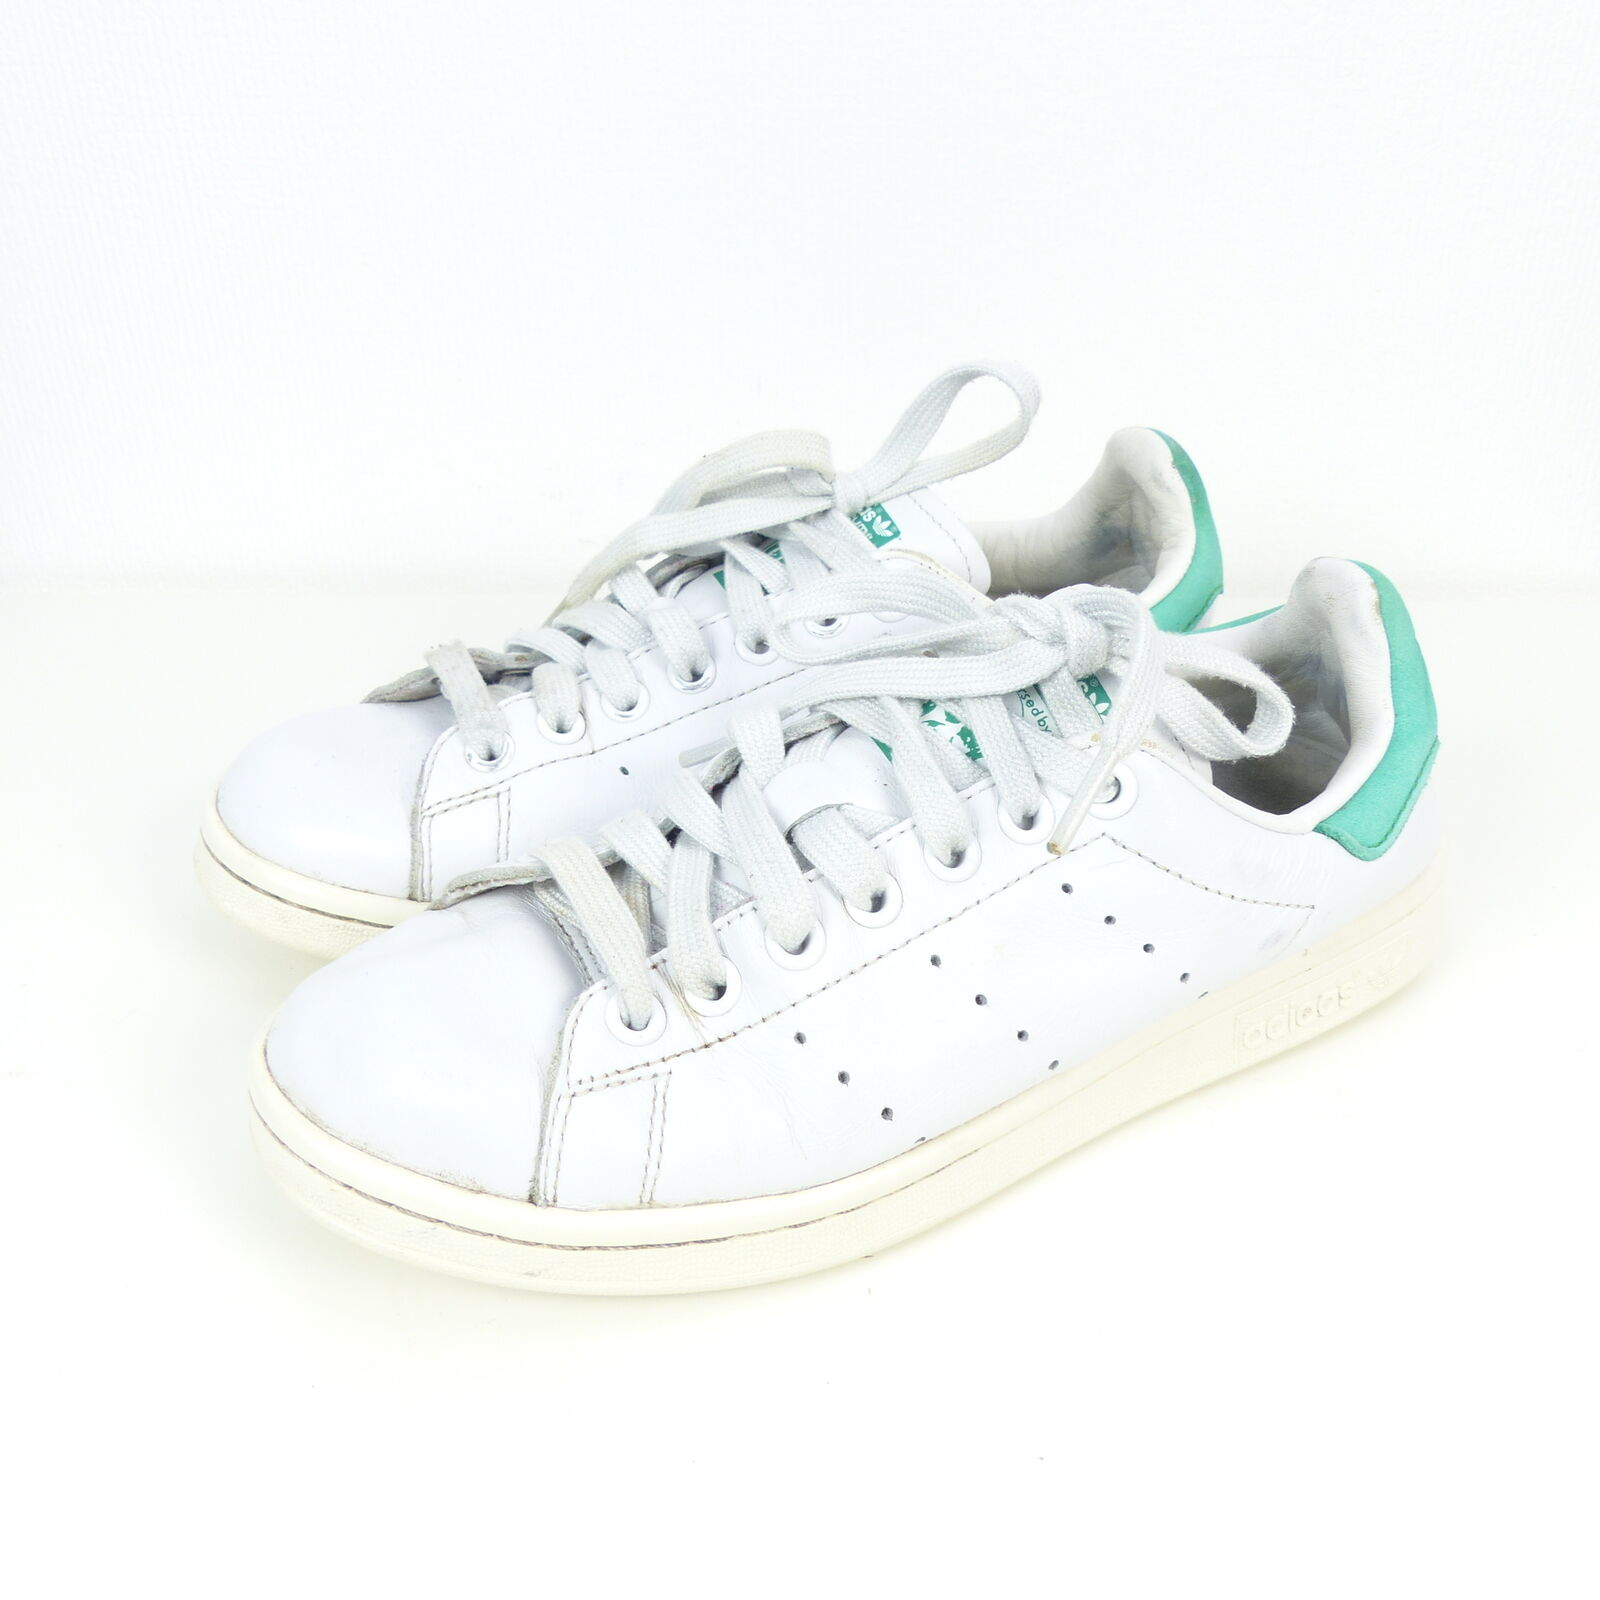 ADIDAS Sneaker Turnschuhe Stan Smith white green Gr. US 5,5